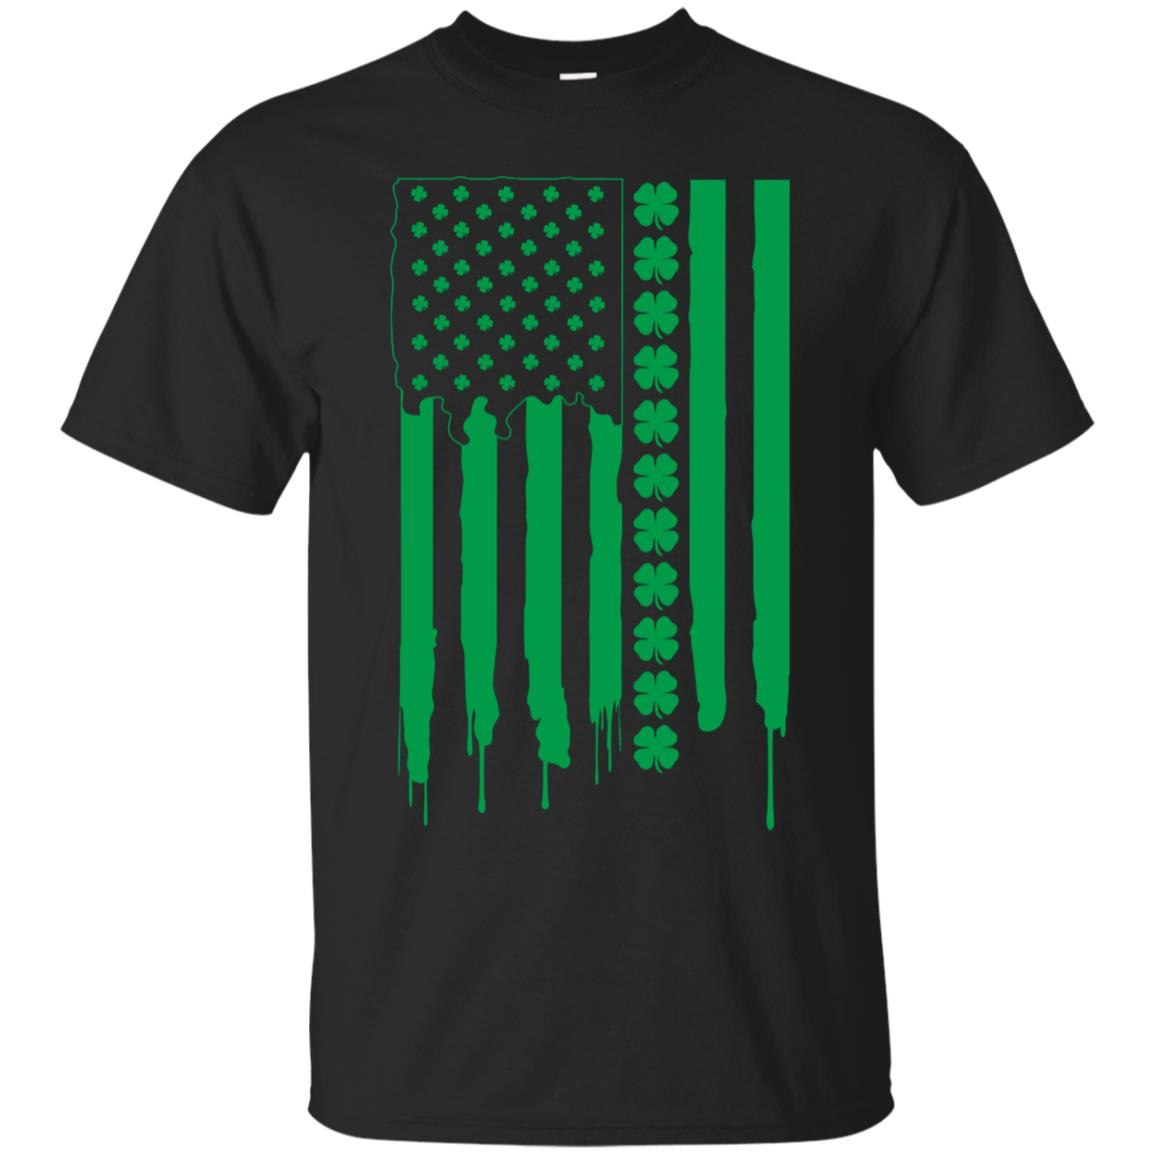 St Patrick's Day Irish American Flag Shirt - Patty's Day Tee 99promocode